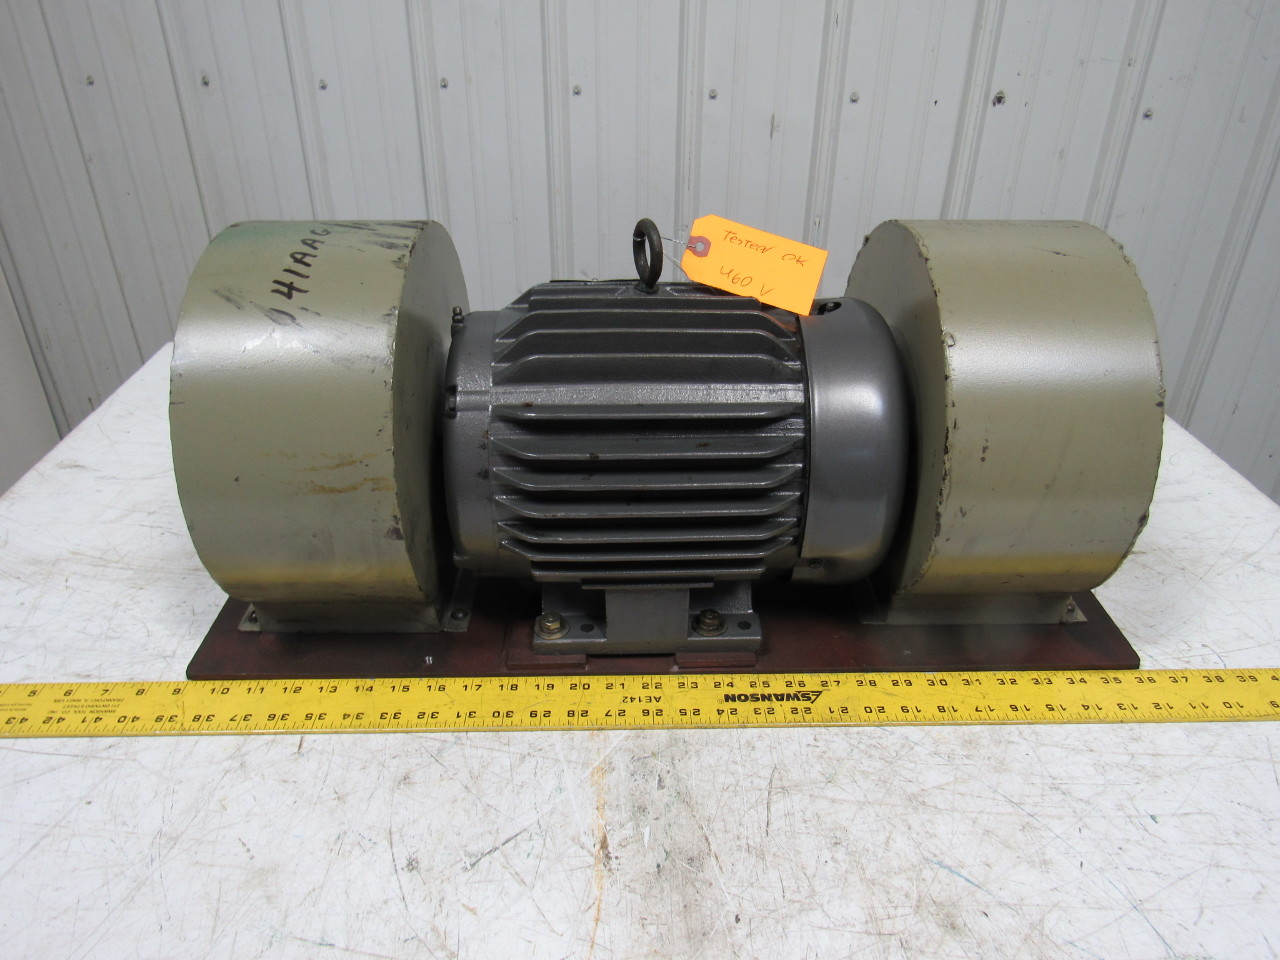 Baldor Industrial Heavy Duty Double Squirrel Cage Blower